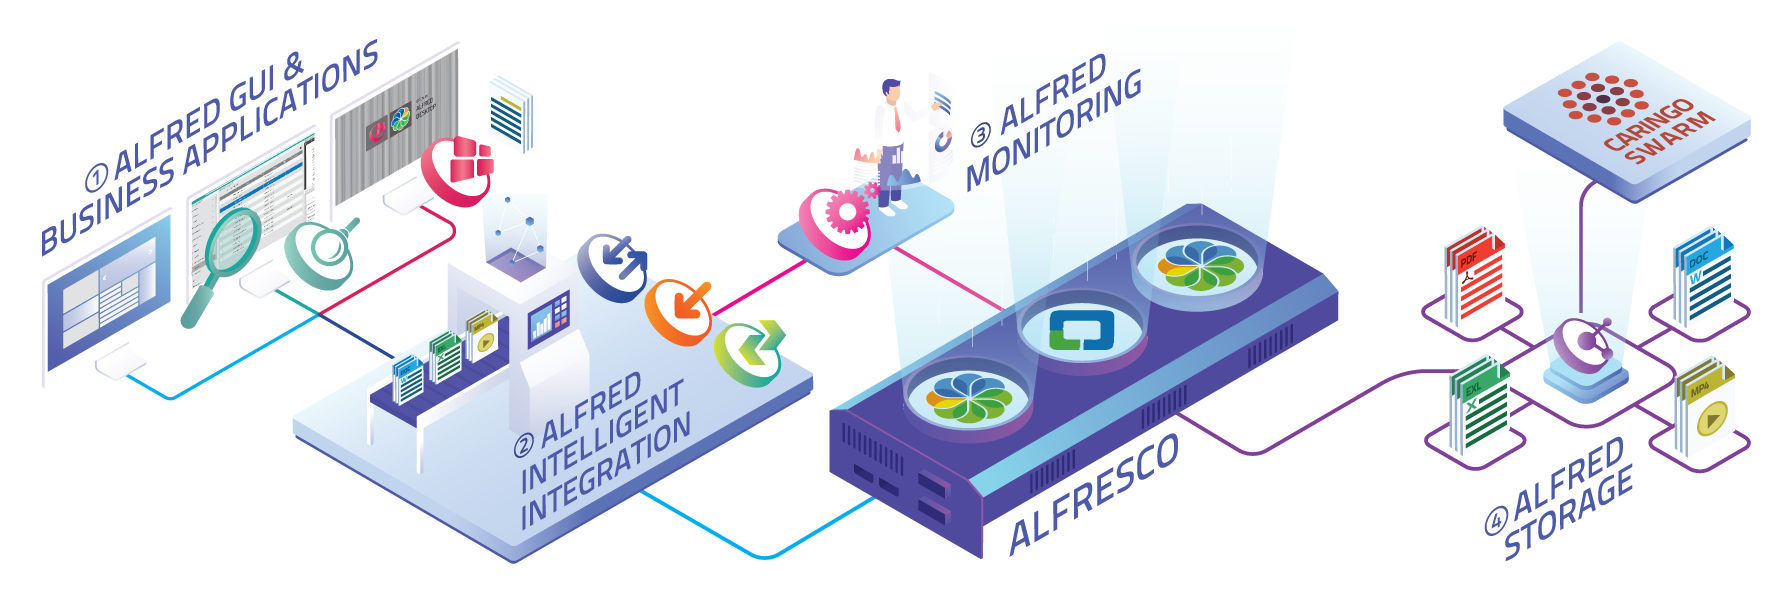 Alfresco high availability